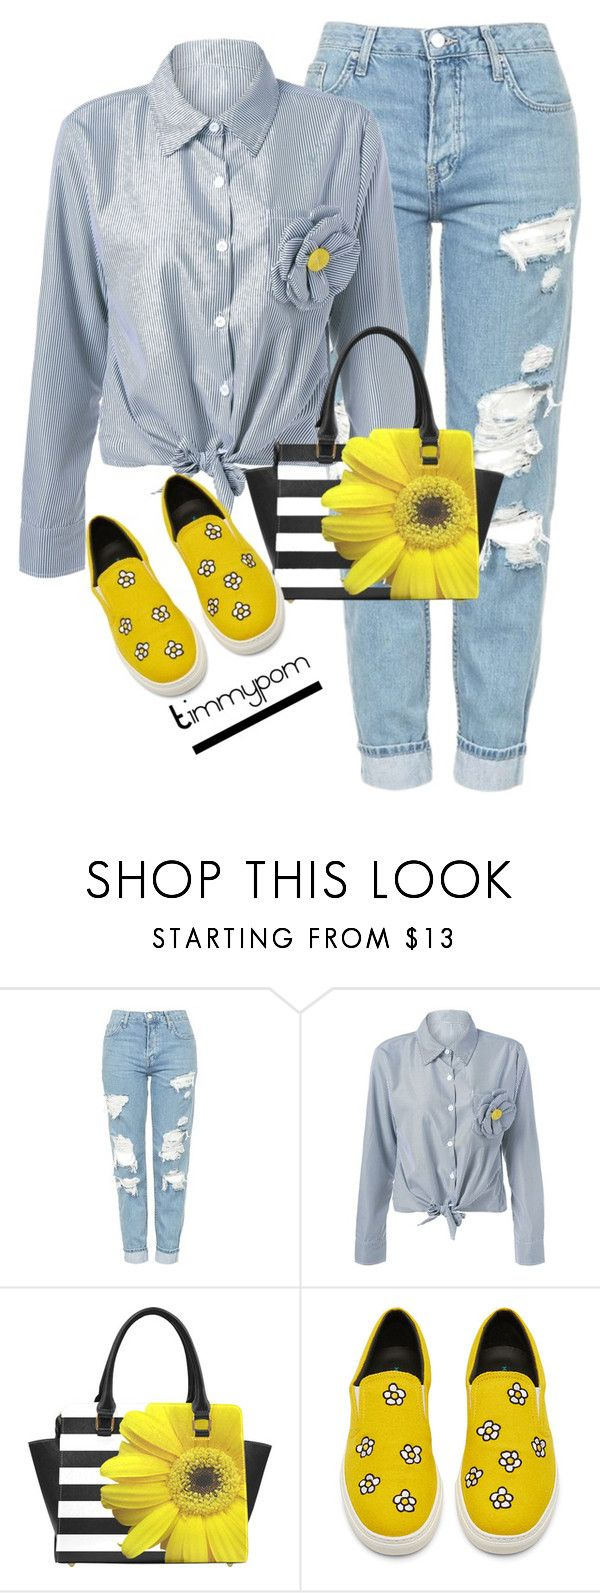 """Weekend style...."" by timmypom ❤ liked on Polyvore featuring Topshop, casual, floral, jeans, shirt and sneakers"